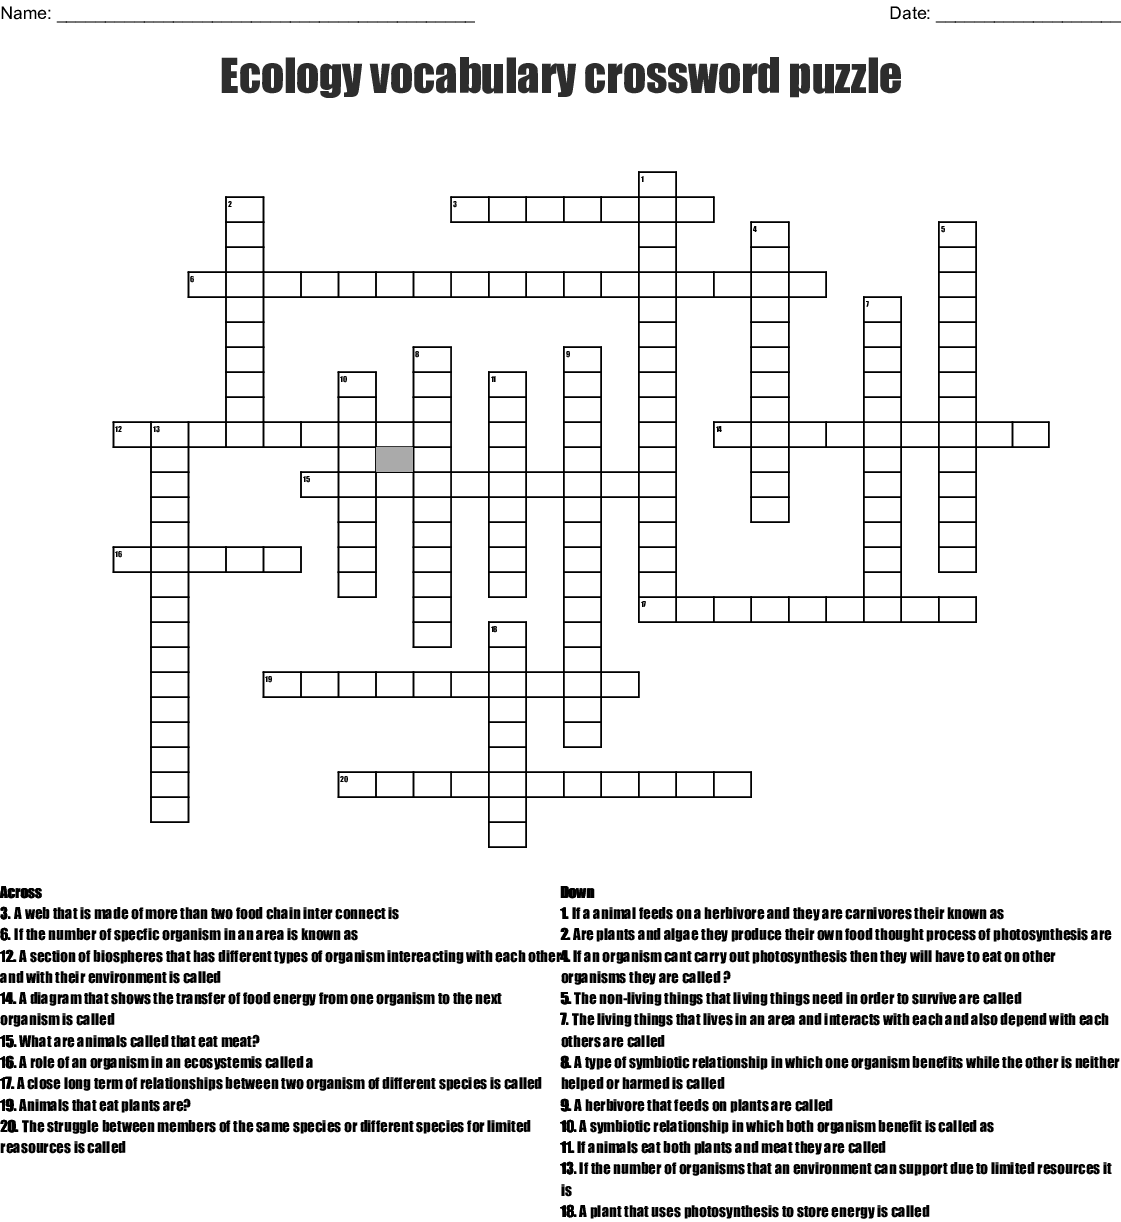 Ecology Vocabulary Crossword Puzzle